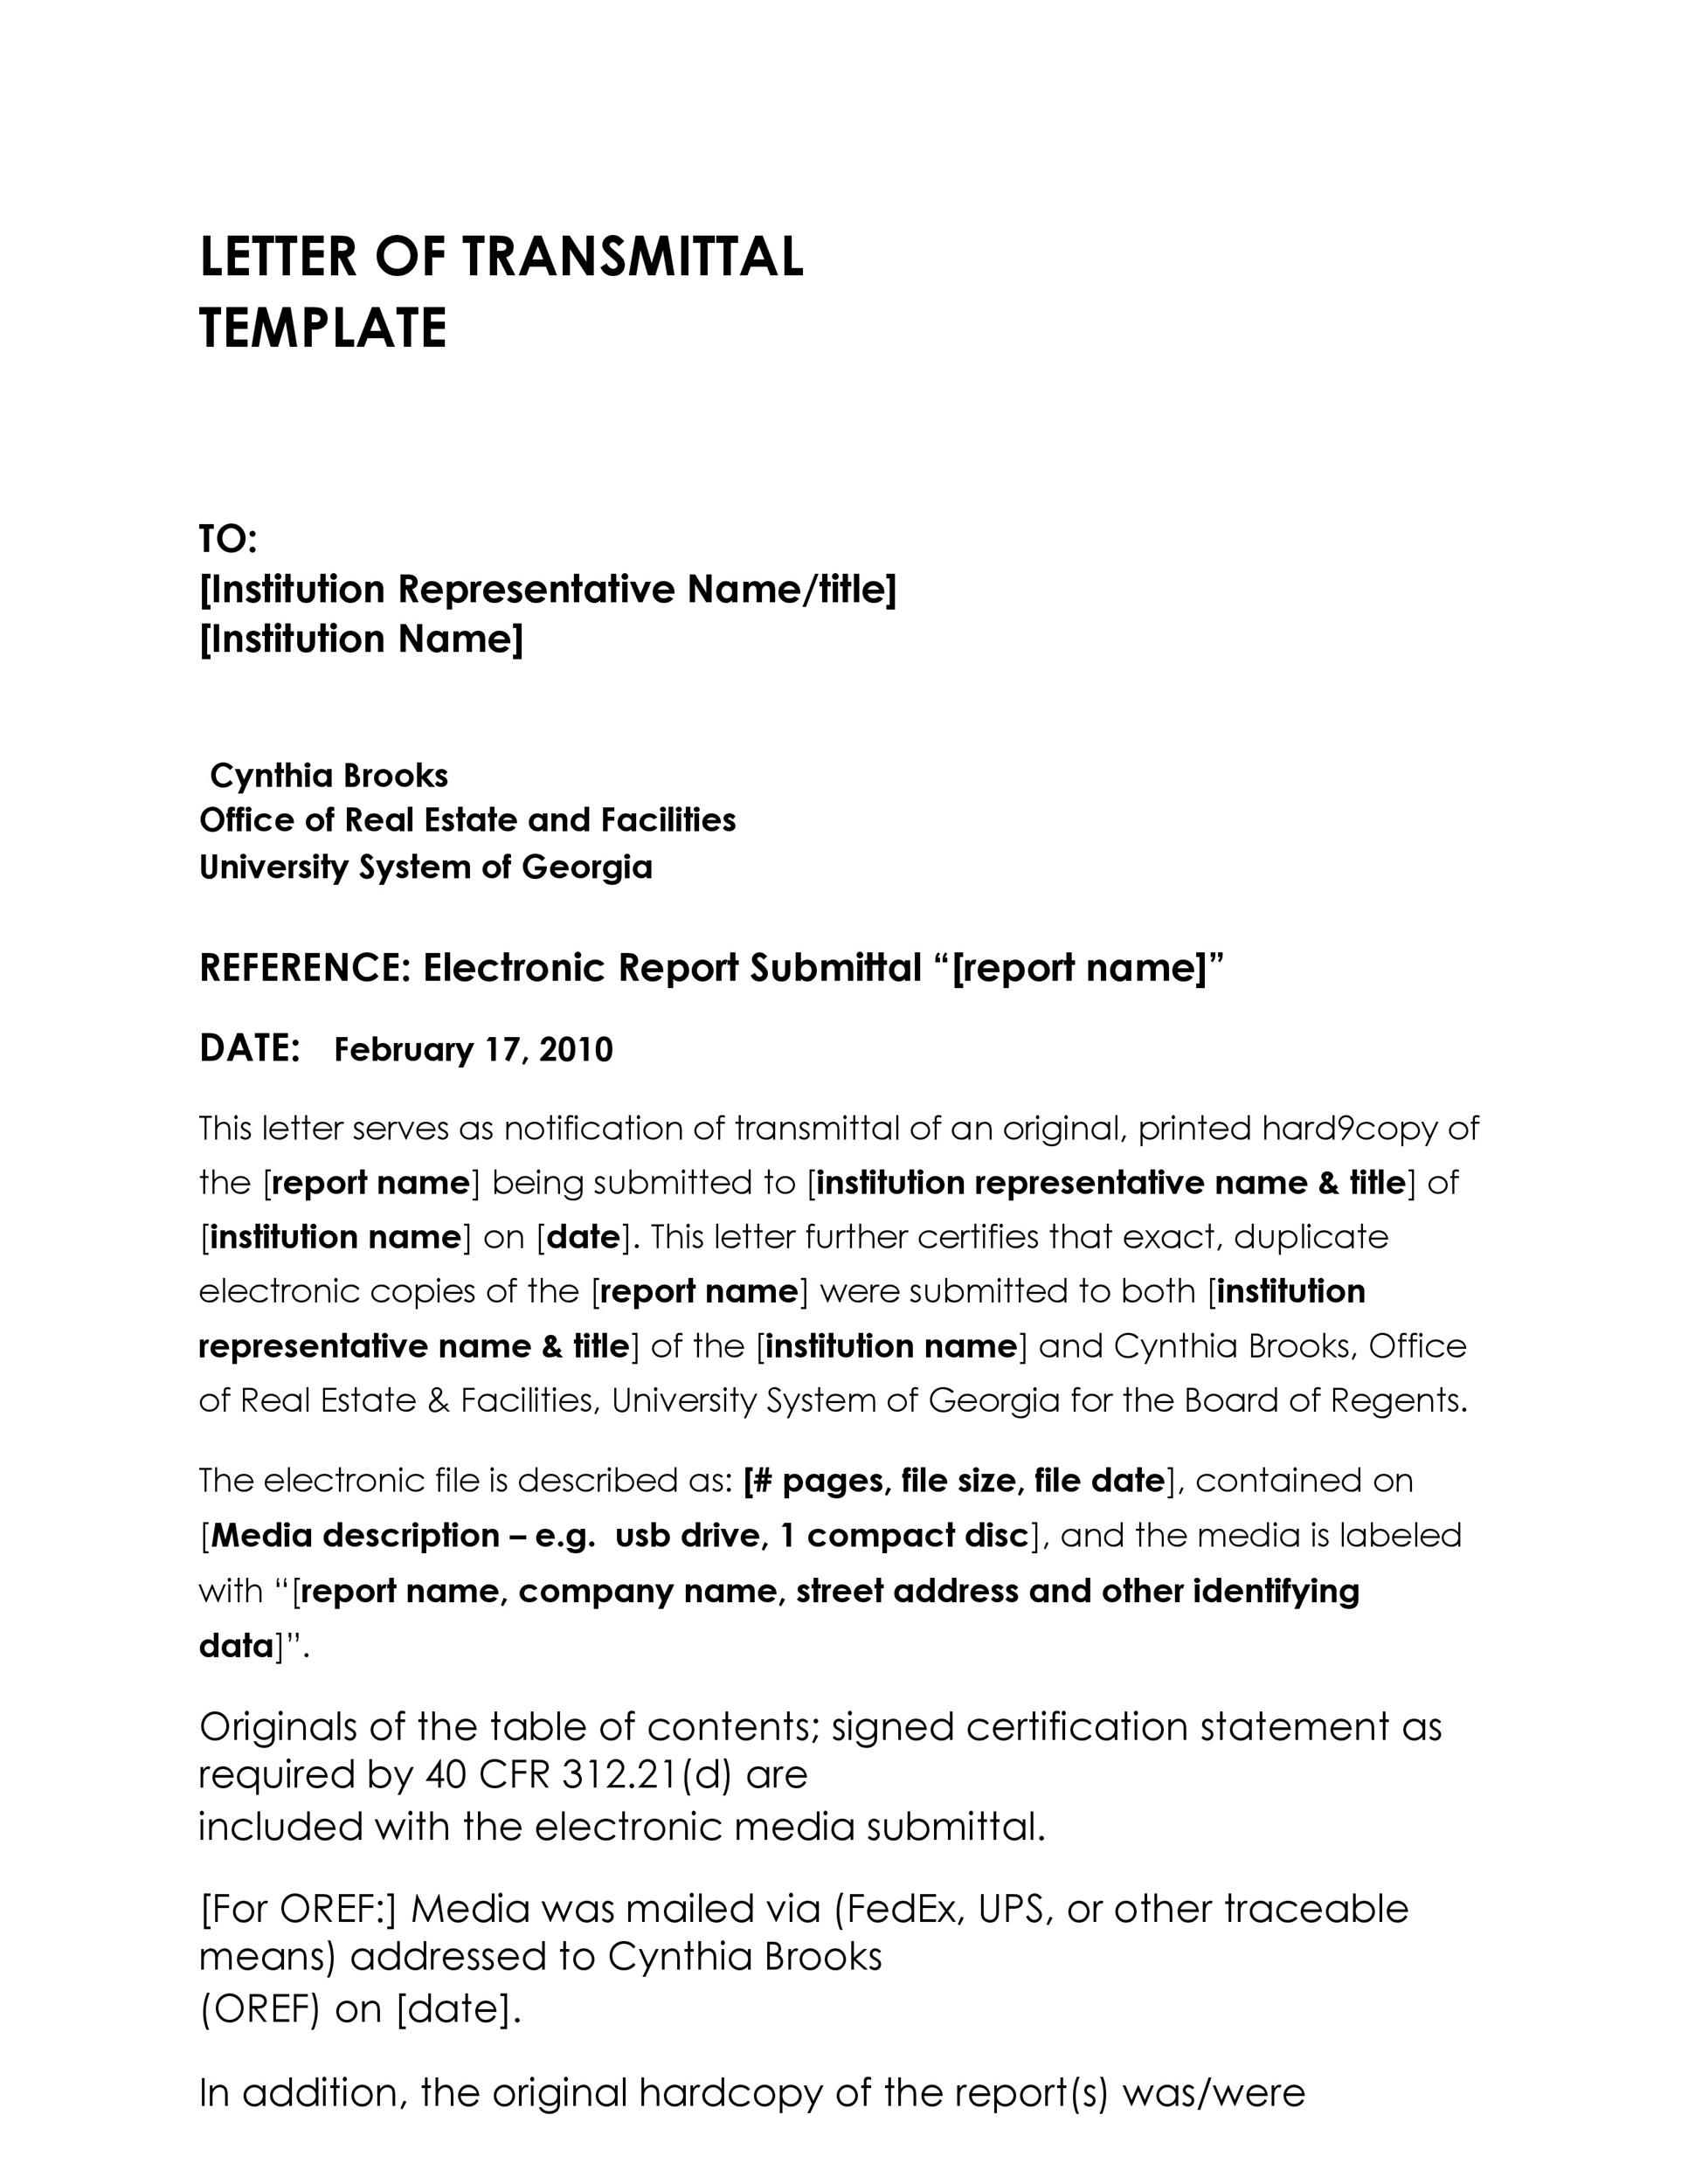 Letter Of Submittal Template from templatelab.com